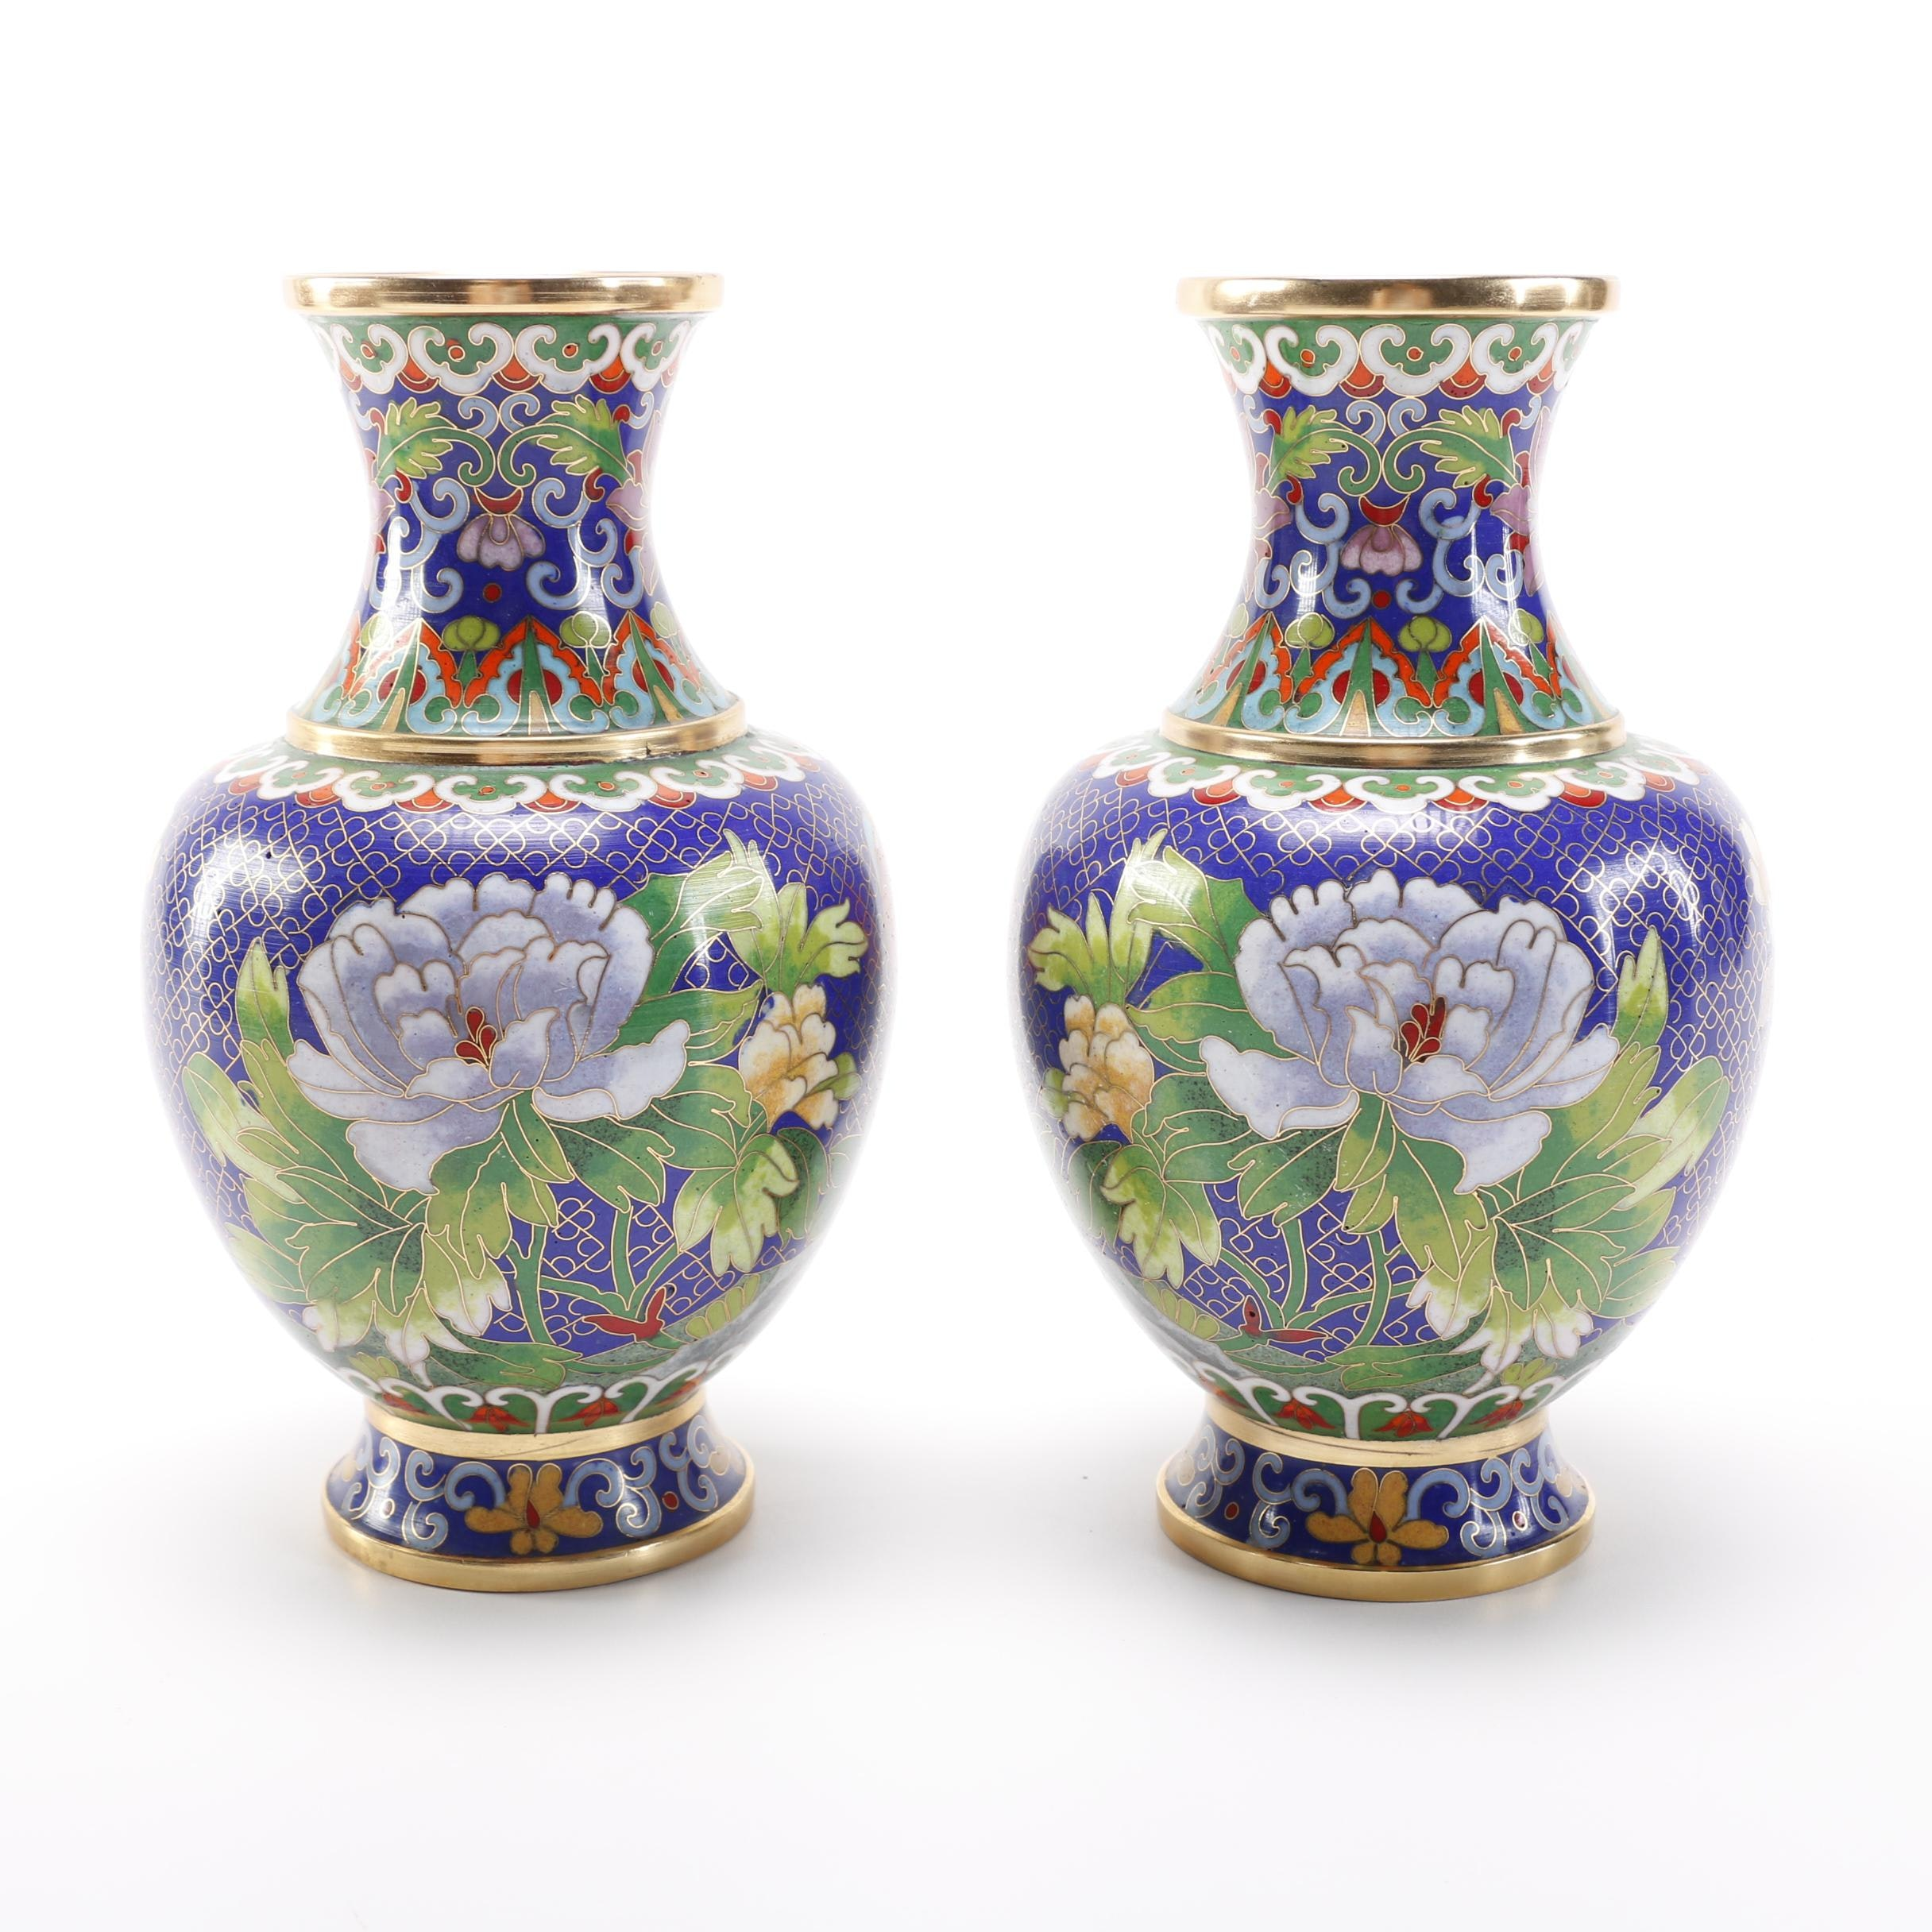 Chinese Cloisonné Brass Vases